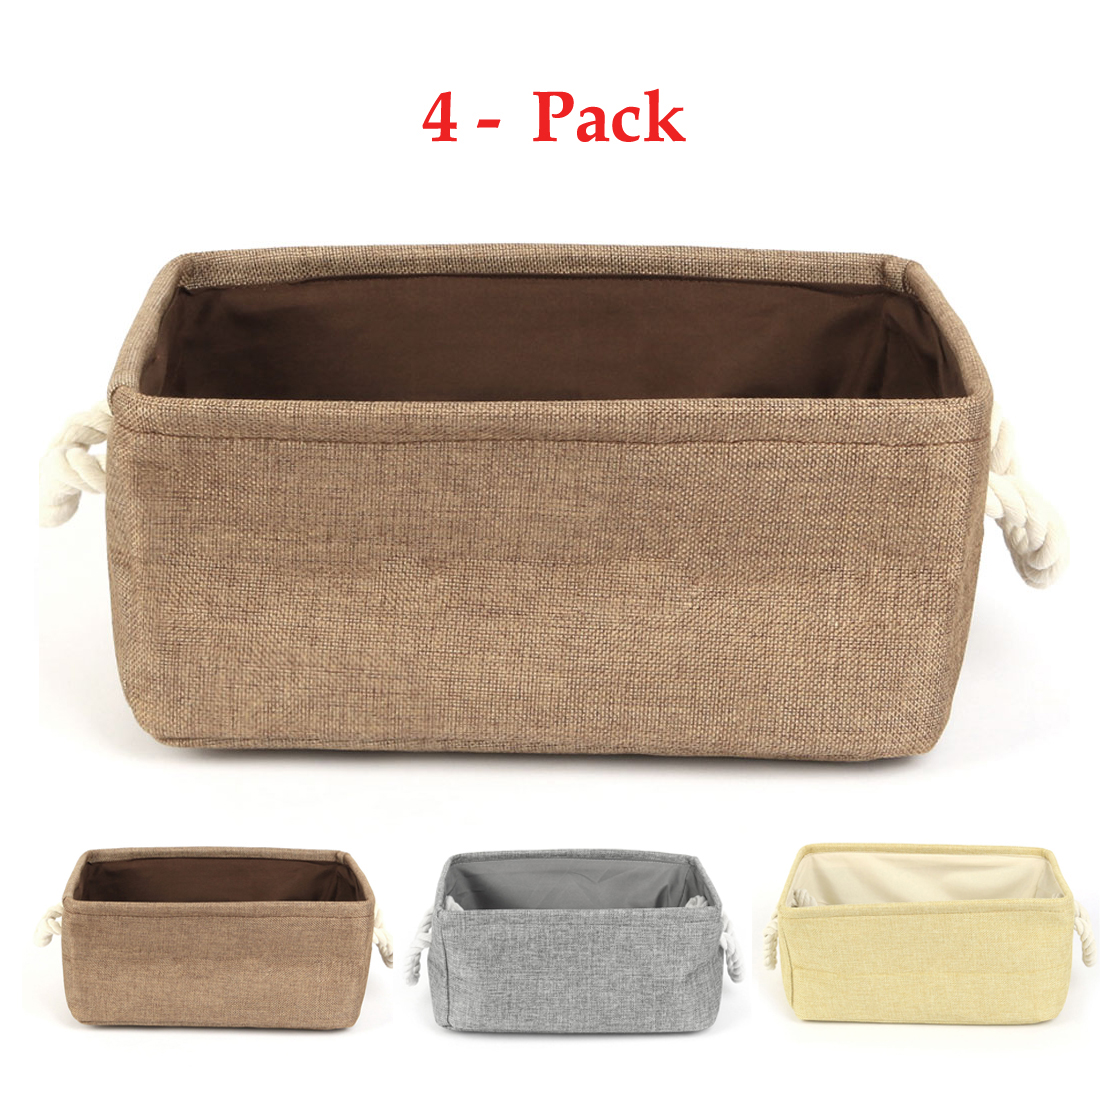 Home Fabric Collapsible Storage Baskets Bin Toy Organizer ,4 Pack